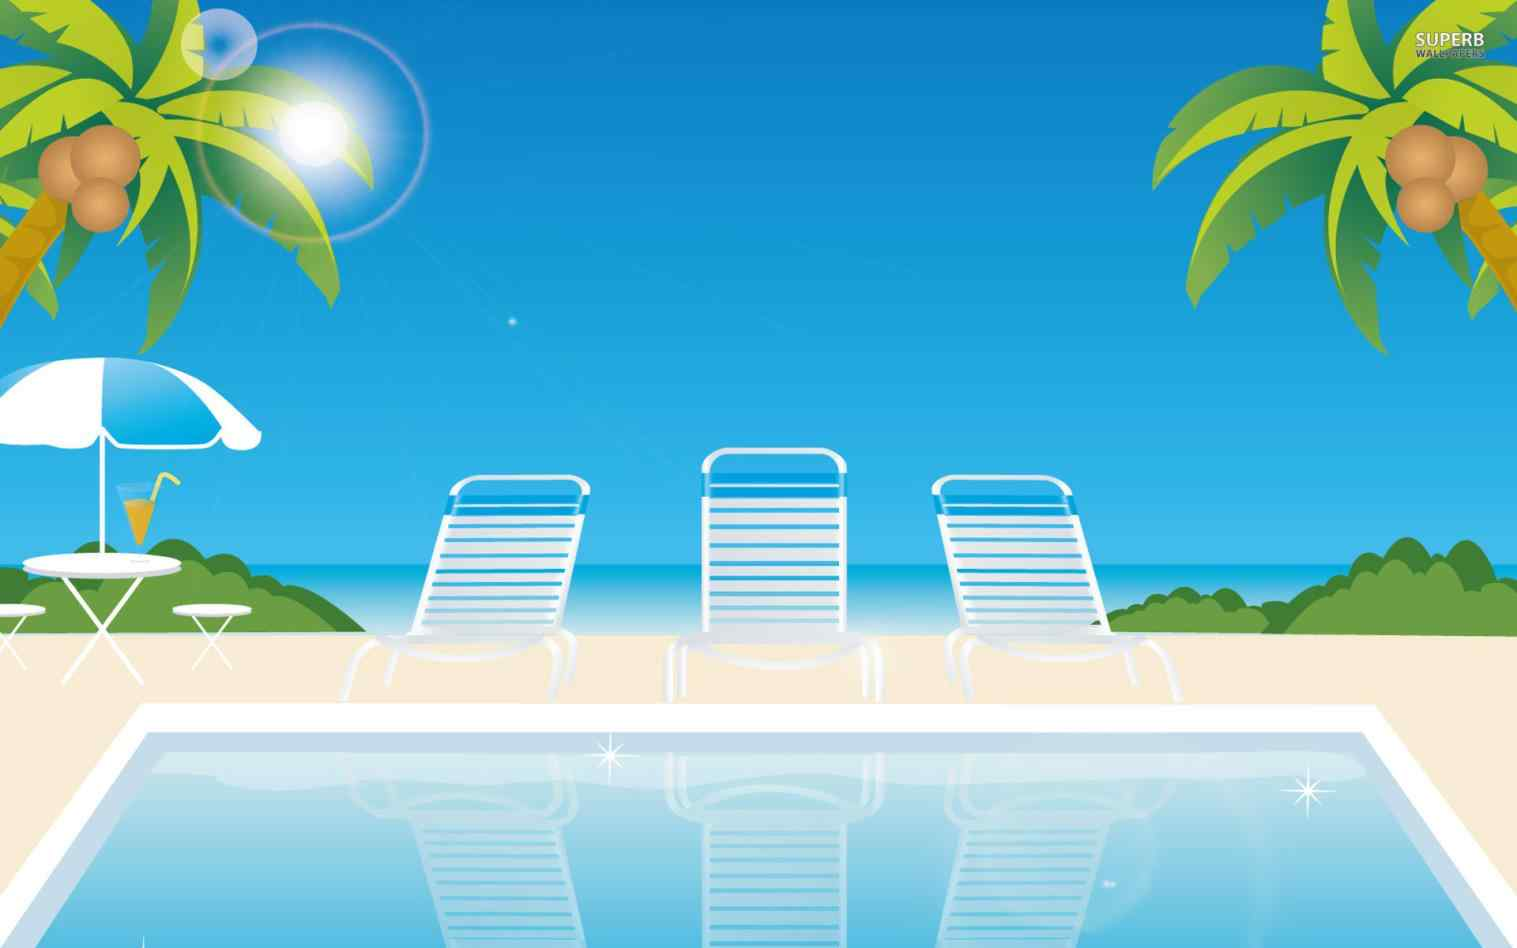 At the daily sketch. Beach clipart pool